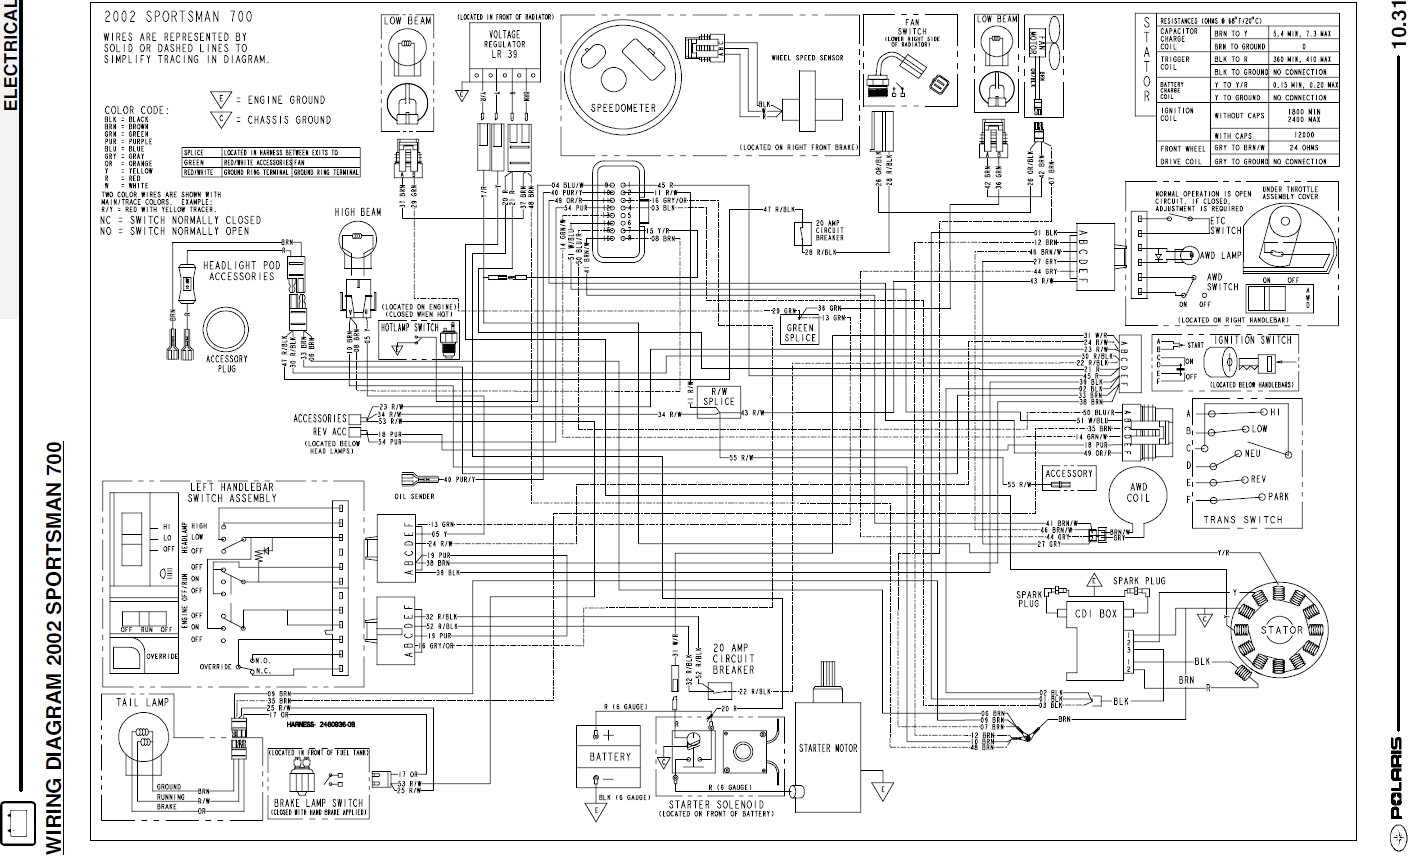 6.0 powerstroke engine wiring harness diagram